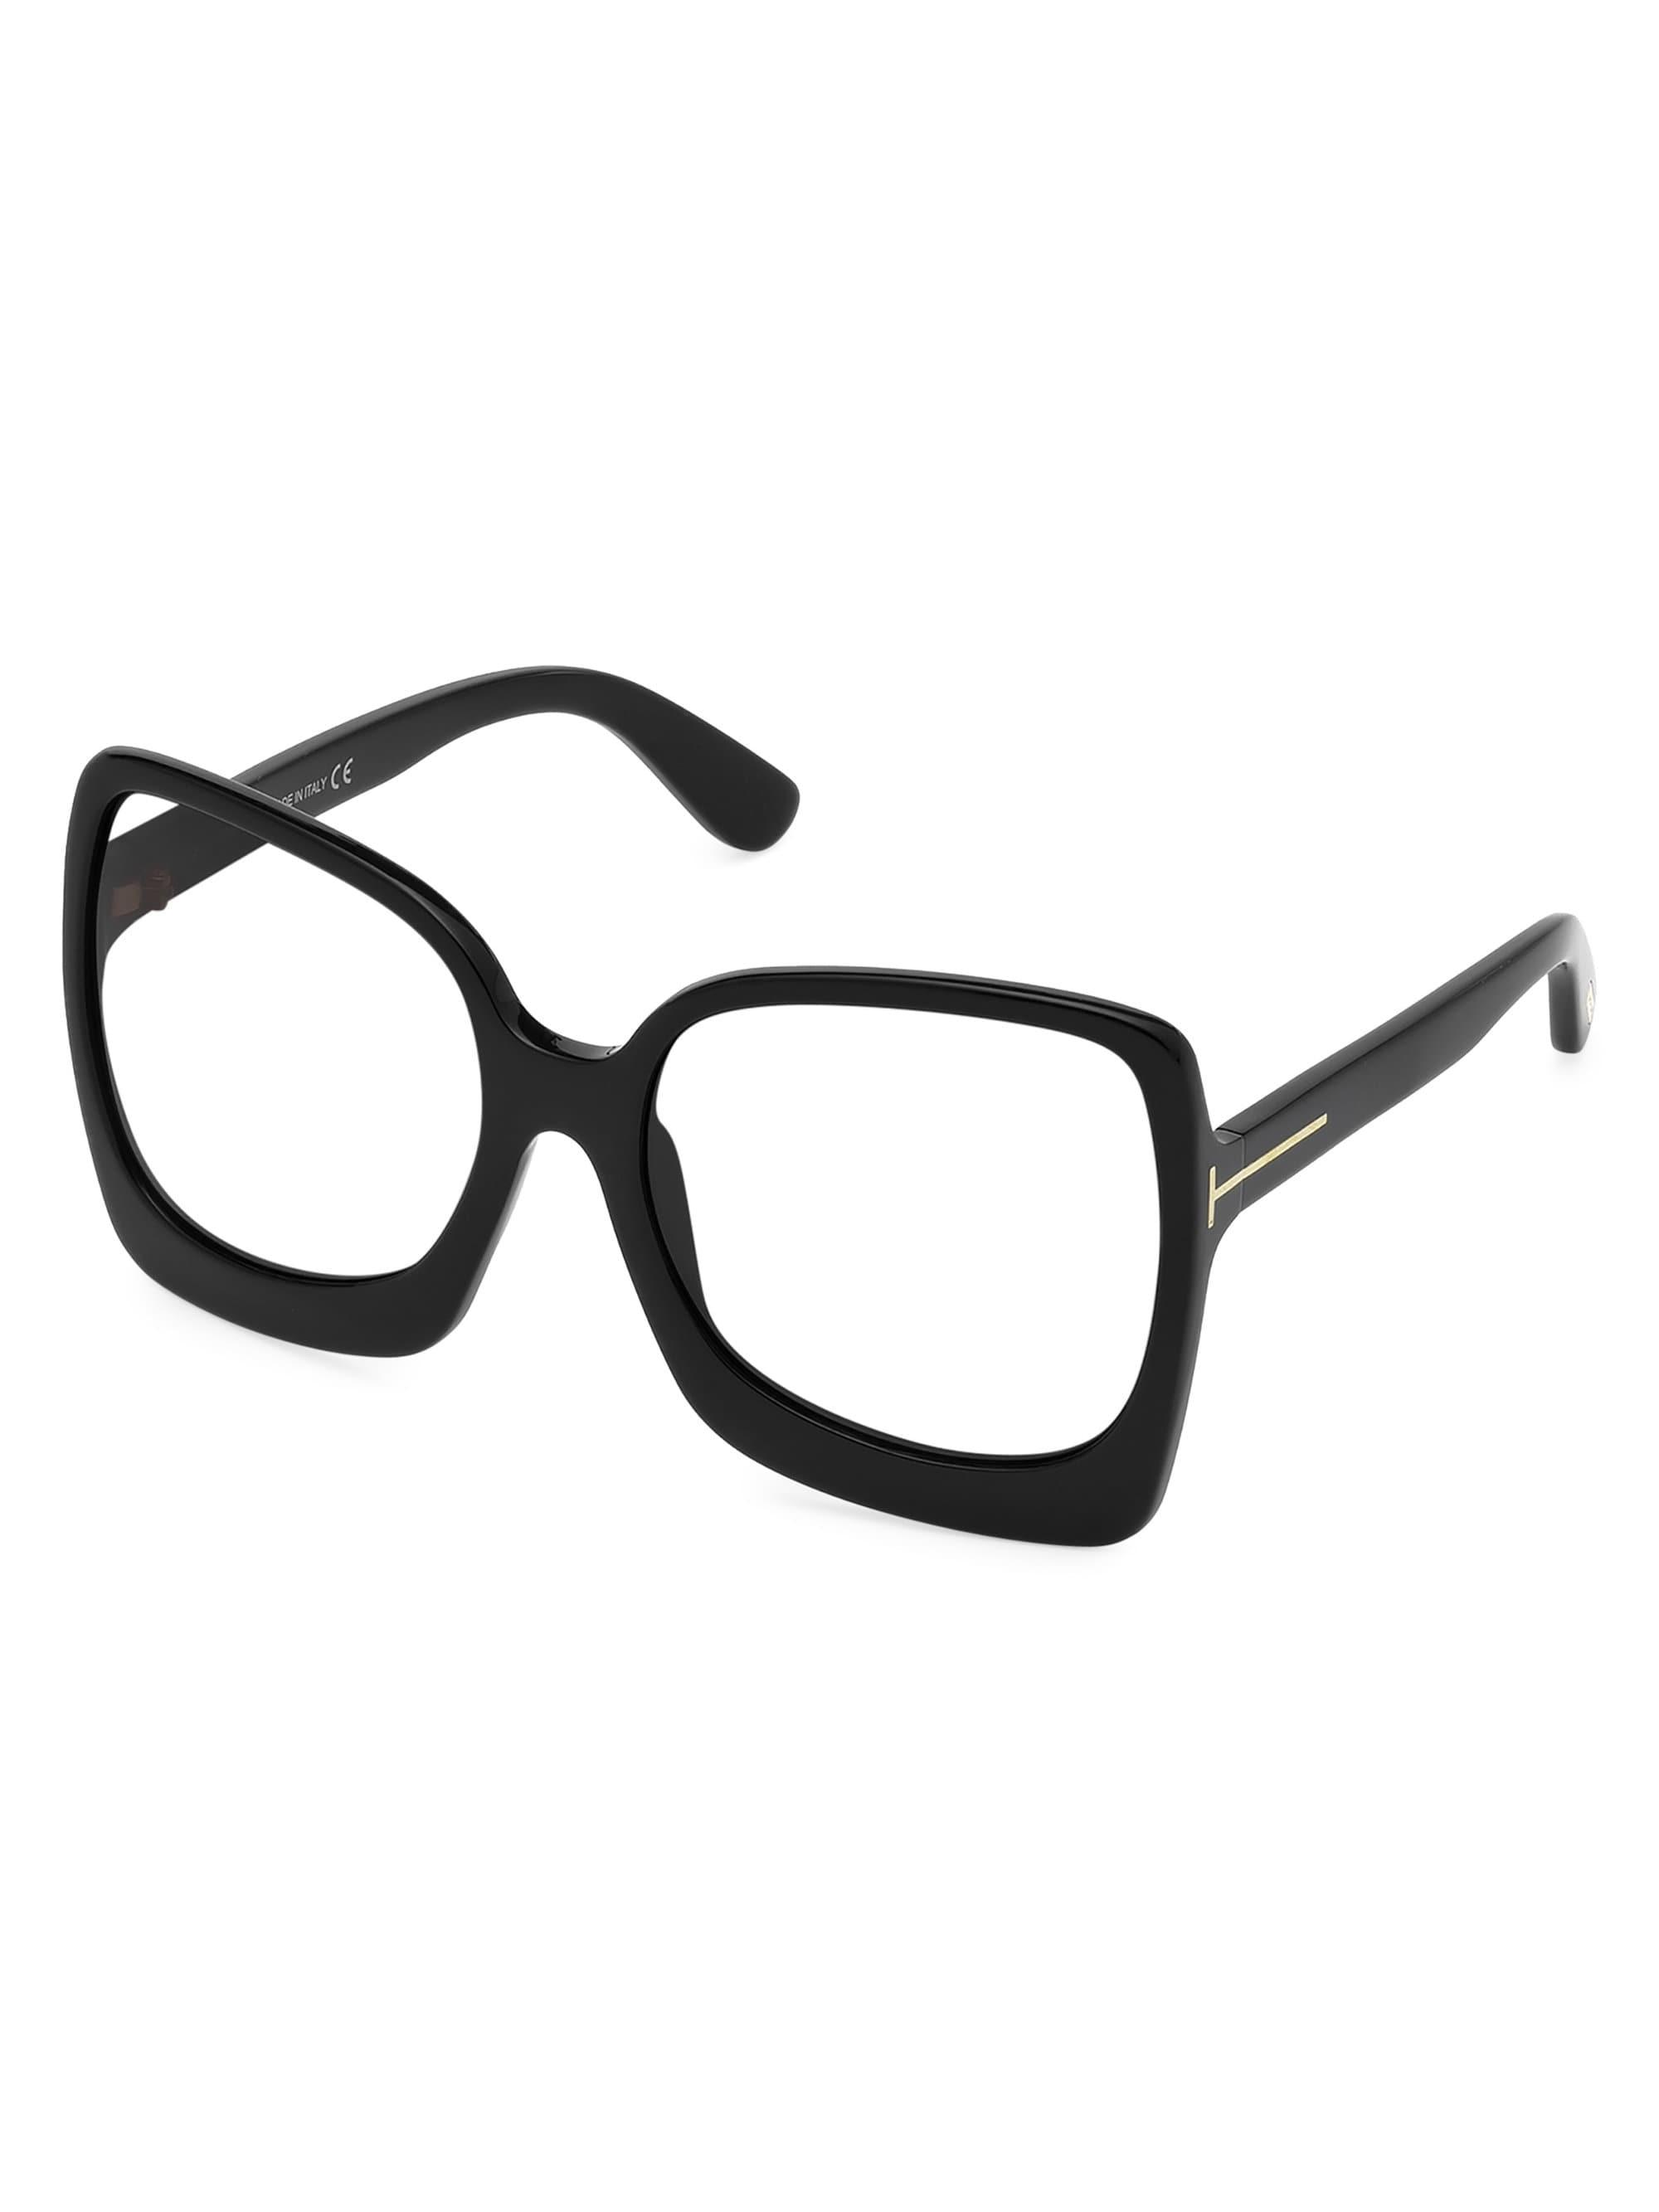 98cdba6aa8 Tom Ford Women s Emmanuella Gigi 60mm Glasses - Black in Black - Lyst